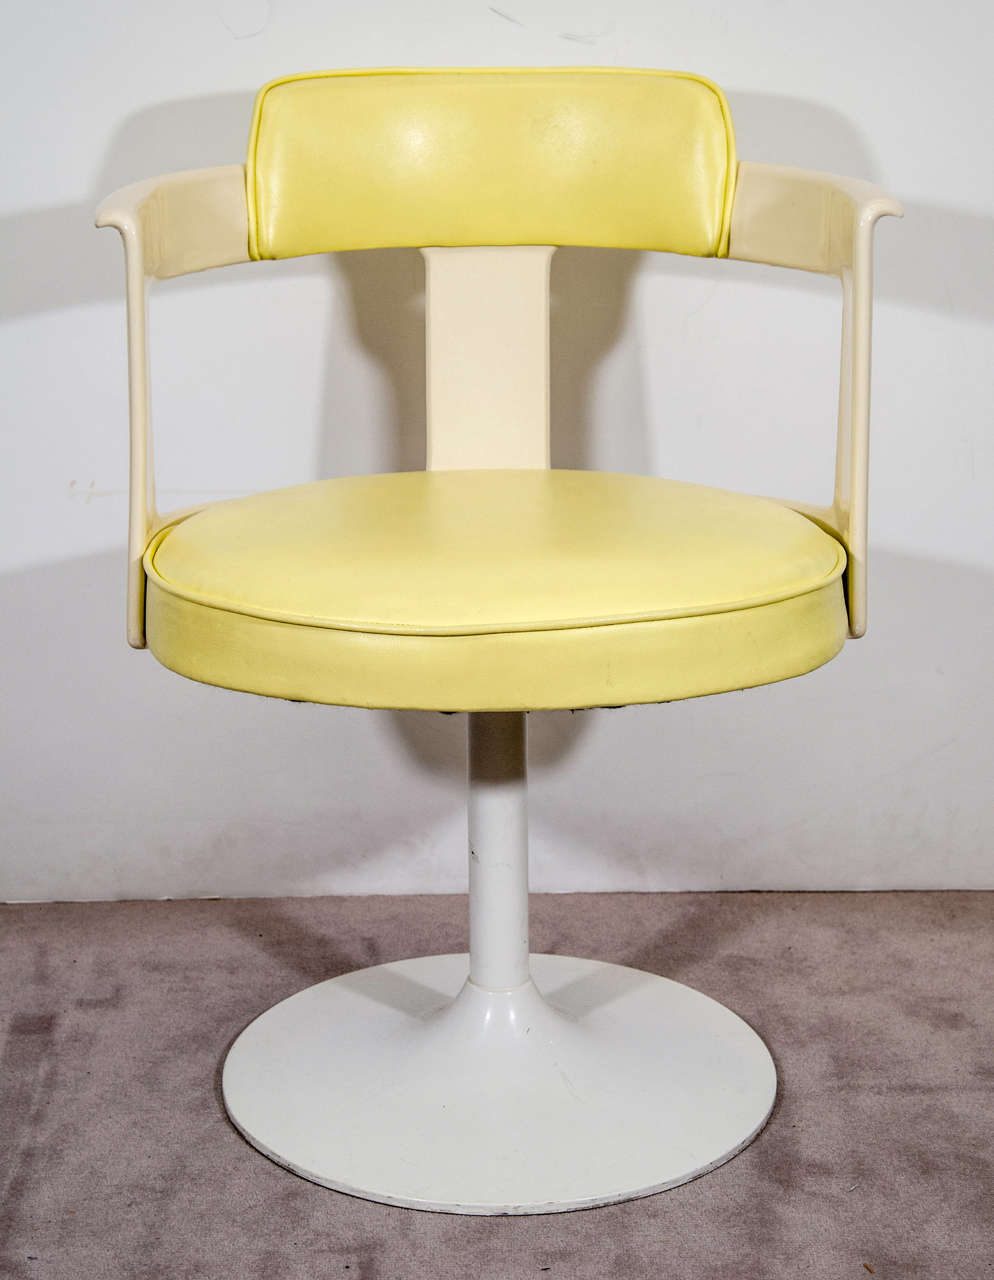 Pair Of Daystrom Tulip Chairs In White And Yellow At 1stdibs